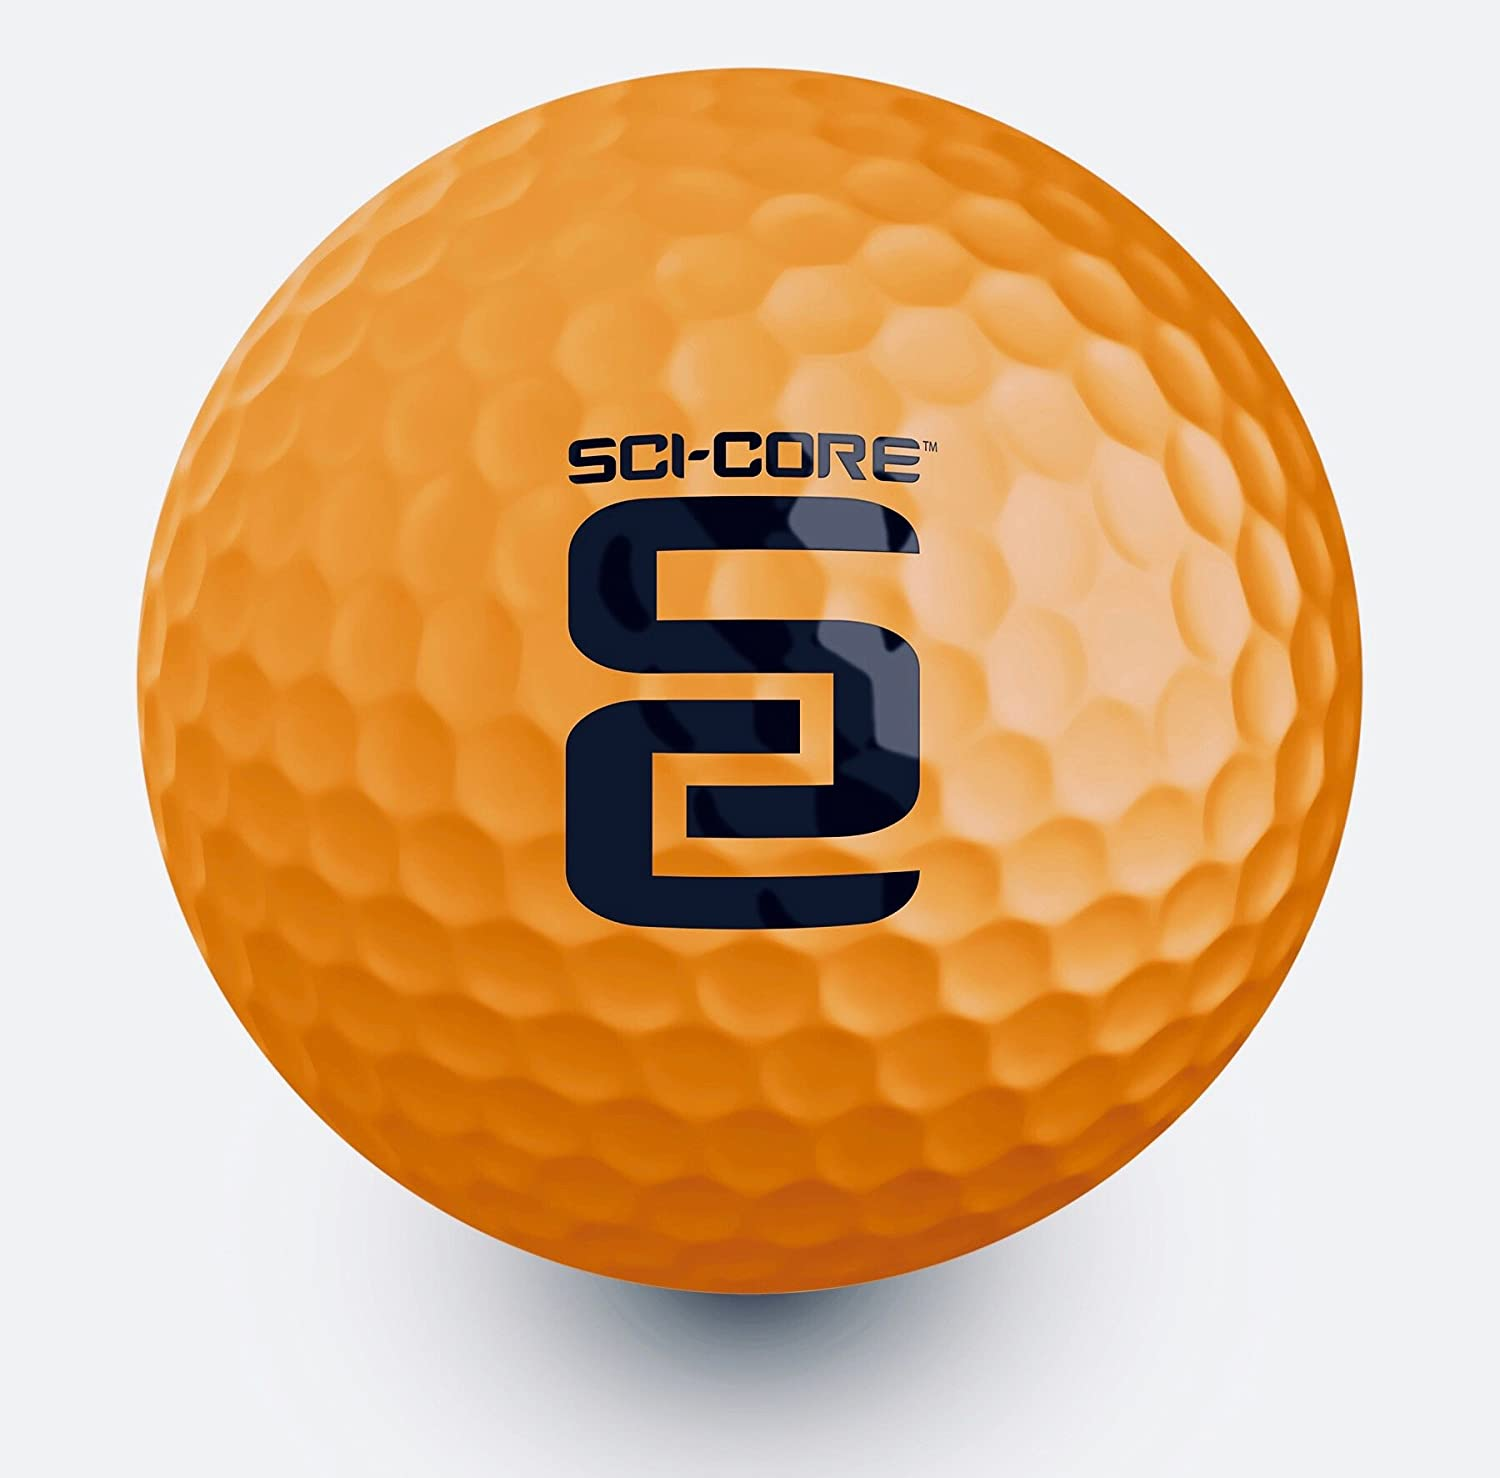 Swing Coach SCI-CORE Real-Feel Indoor-Outdoor Golf Practice Ball 12 Pack